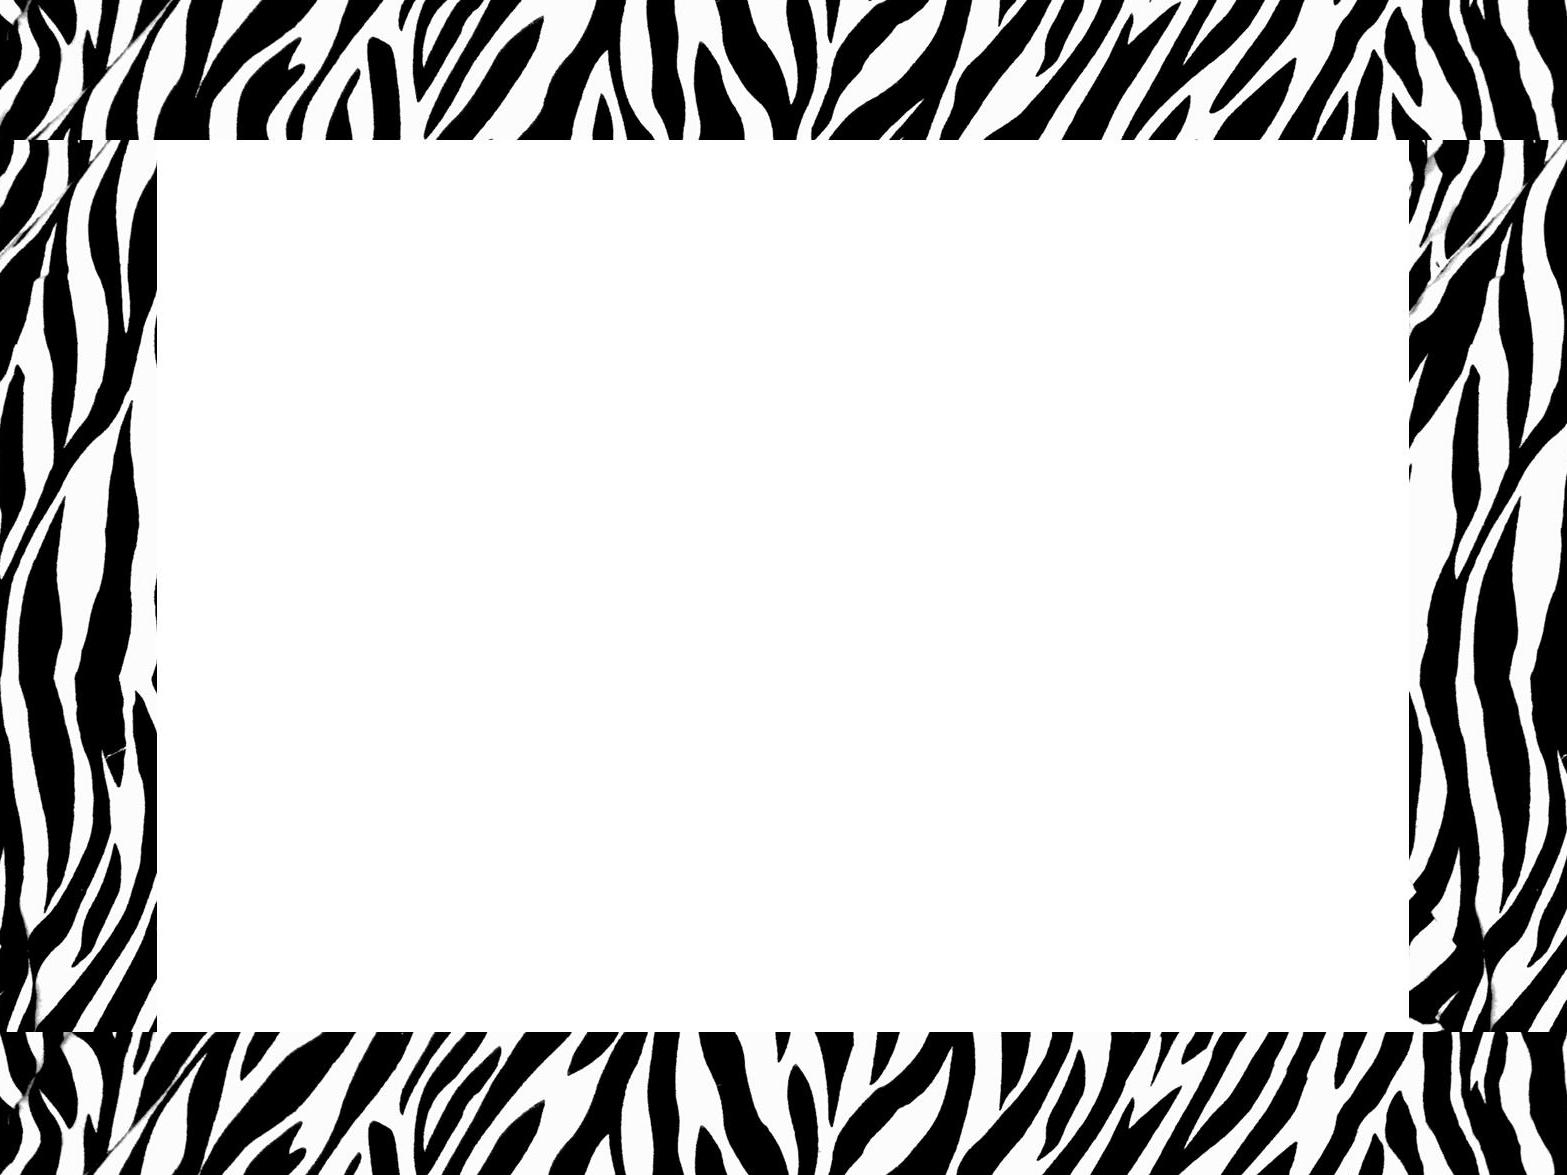 Free Free Zebra Print Border, Download Free Clip Art, Free Clip Art - Free Printable Zebra Print Birthday Invitations